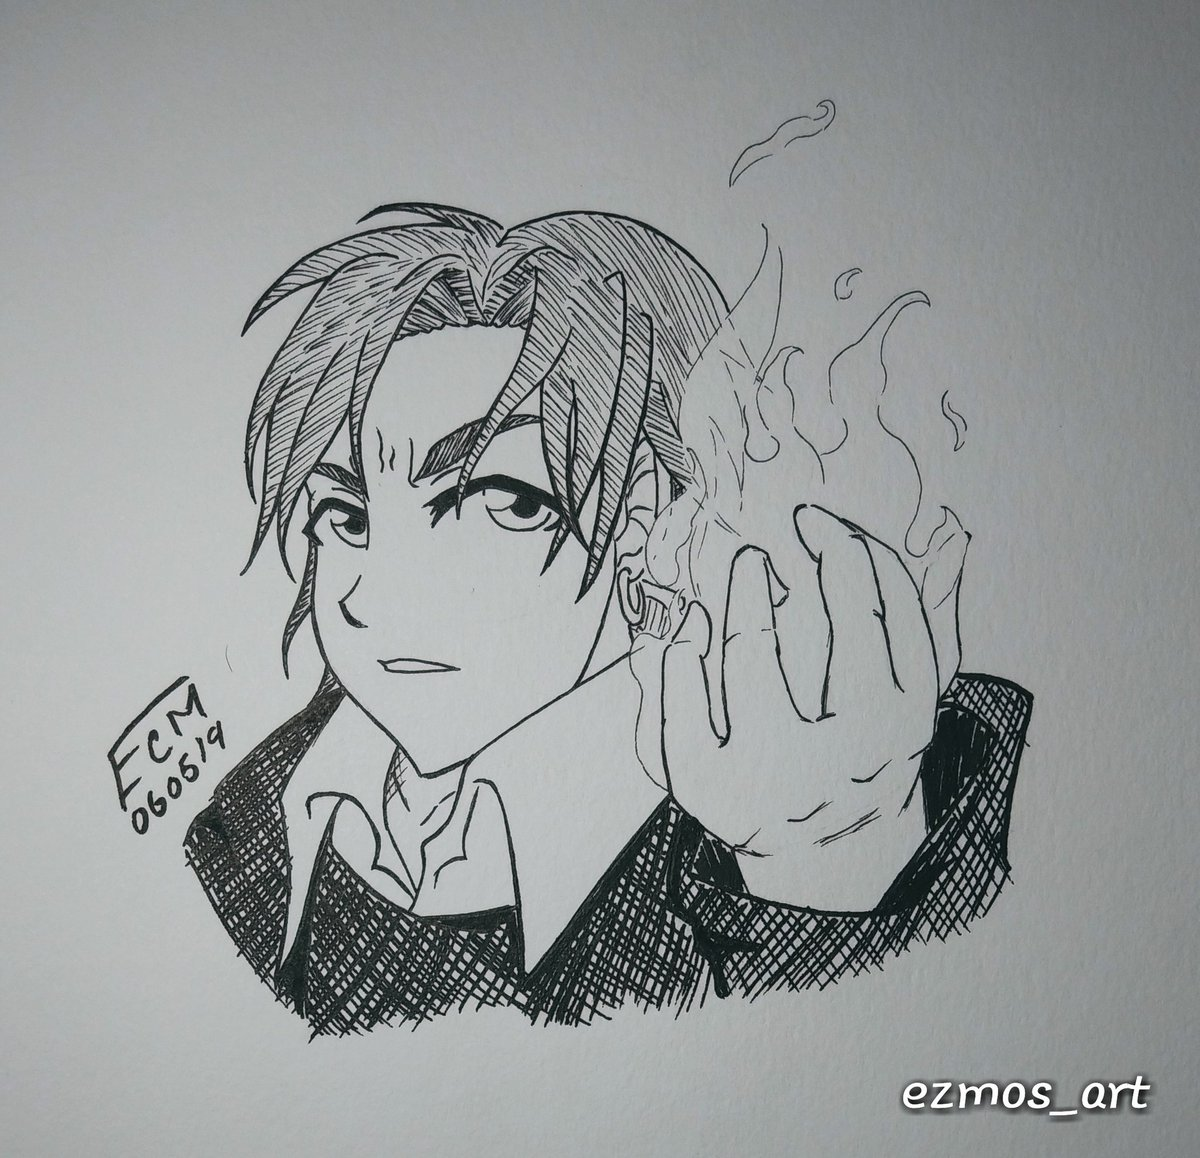 Ezmo On Twitter I Don T Know Why But I Ended Up Drawing Angry Fire Boy Natsume From Gakuen Alice It S A Good Anime I Don T Believe They Ever Finished It I Never